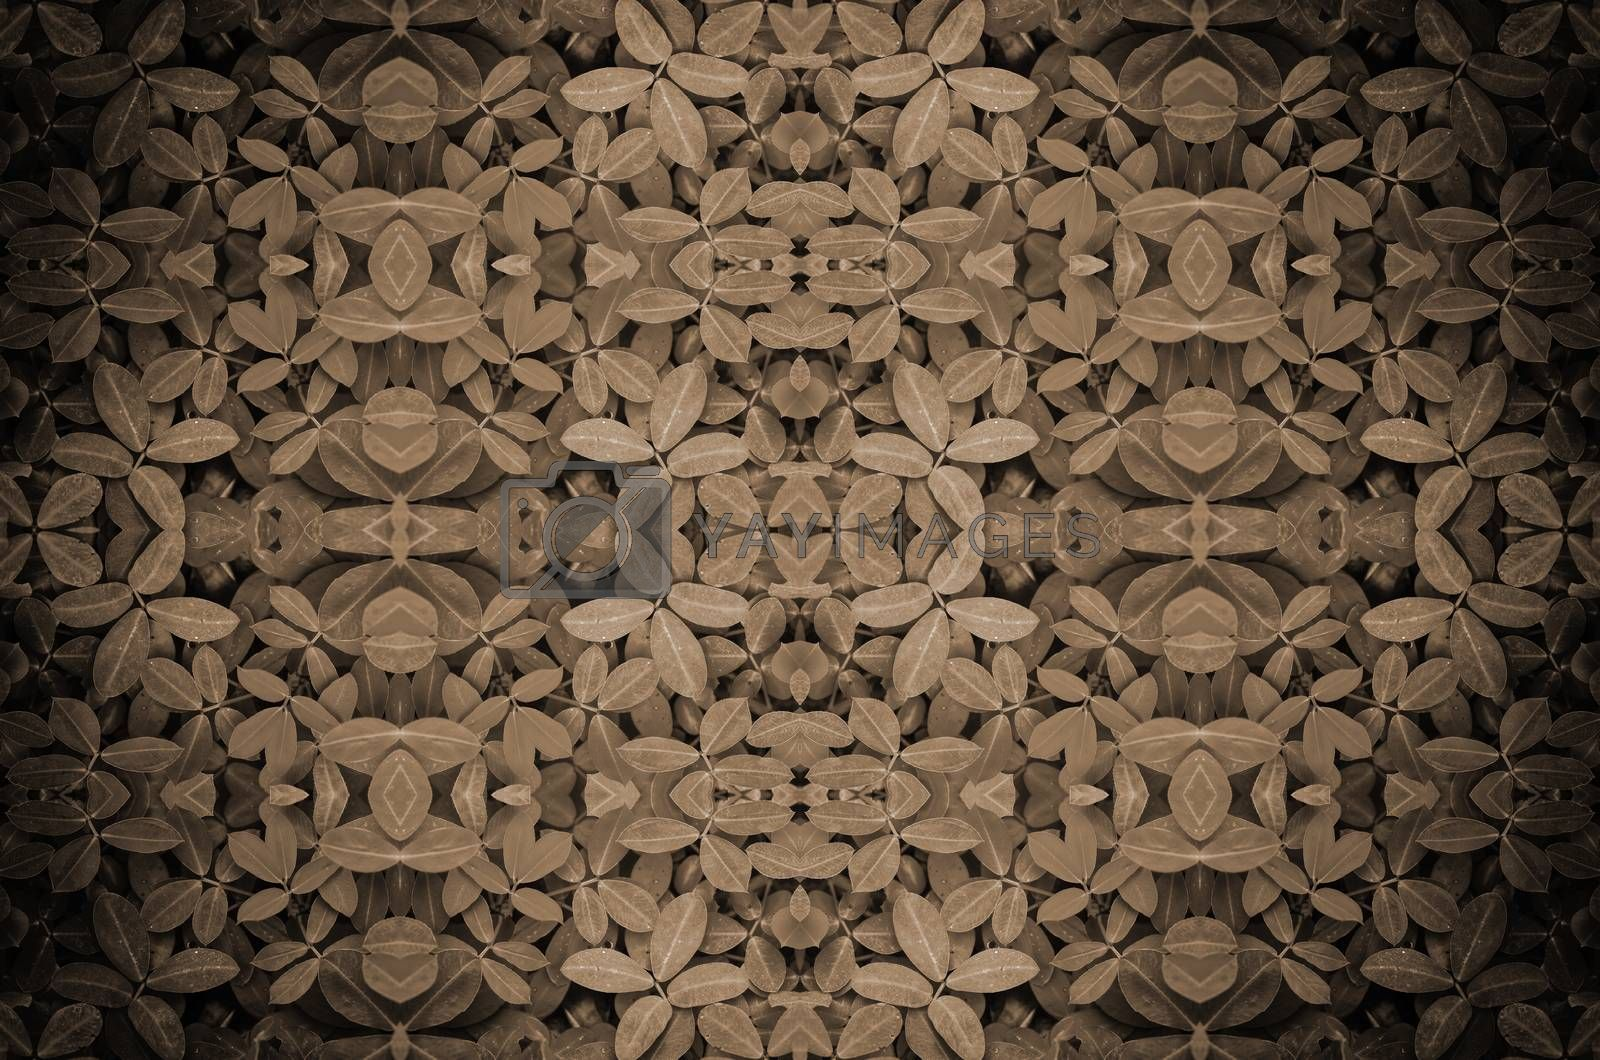 Royalty free image of leaf background by raweenuttapong